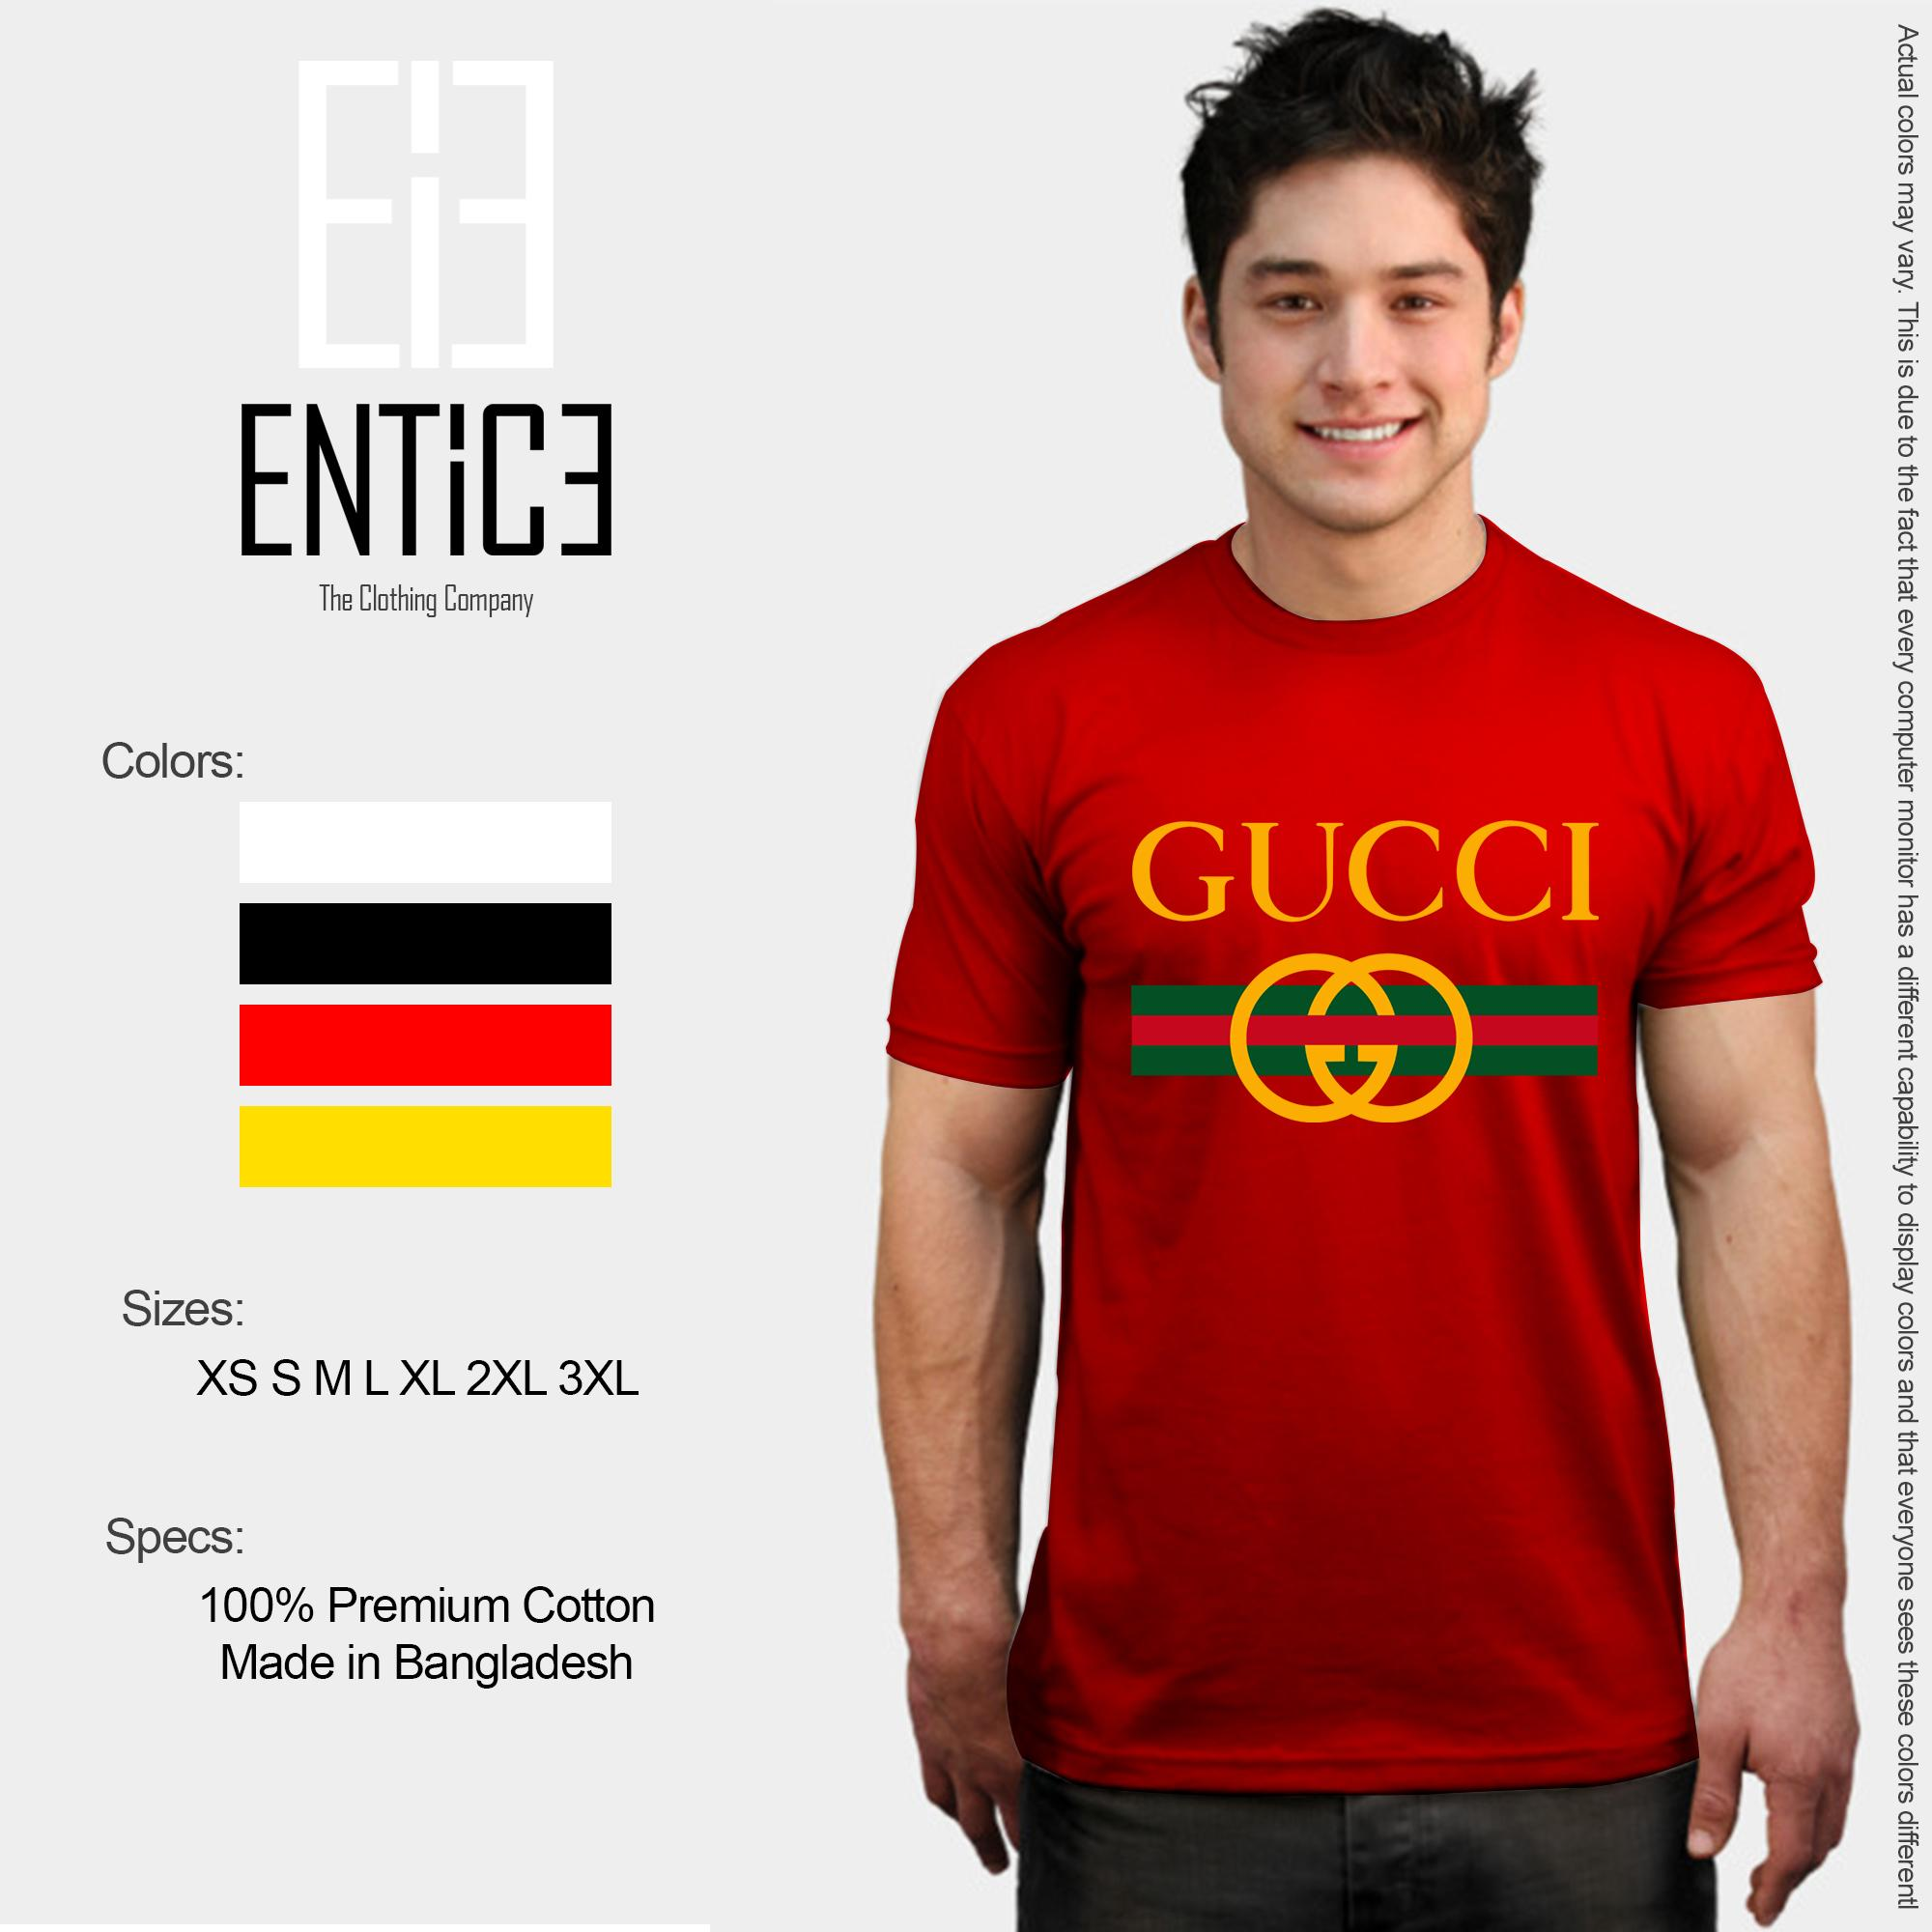 14787bda Gucci Elegant Tee: Buy sell online T-Shirts with cheap price | Lazada PH